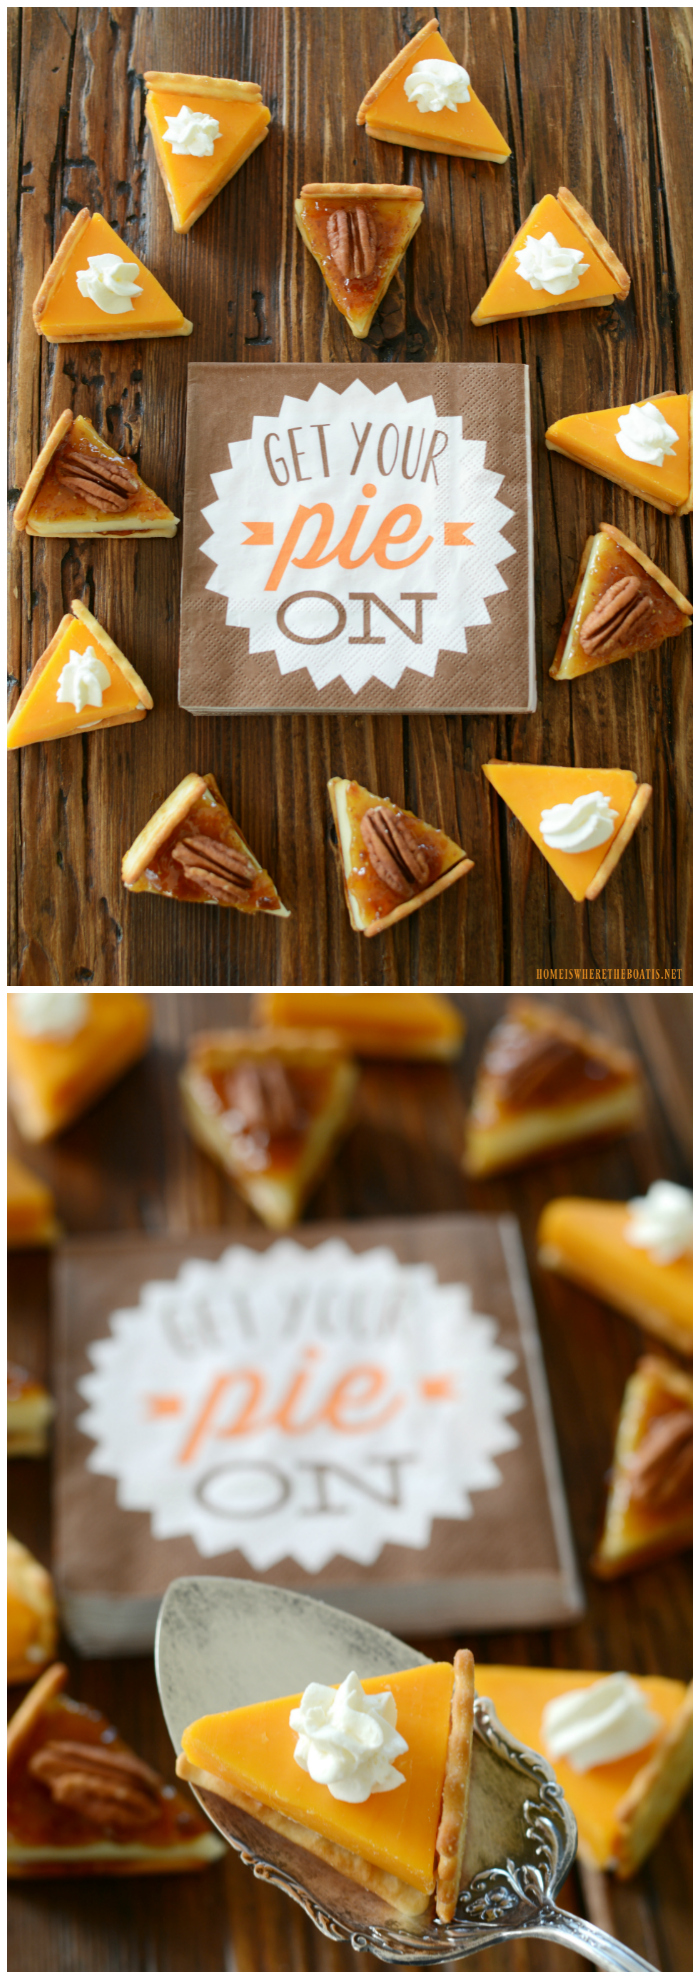 Cheese wedges to mimic Pumpkin and Pecan Pie for Thanksgiving | ©homeiswheretheboatis.net #thanksgiving #friendsgiving #recipes #appetizer #cheese